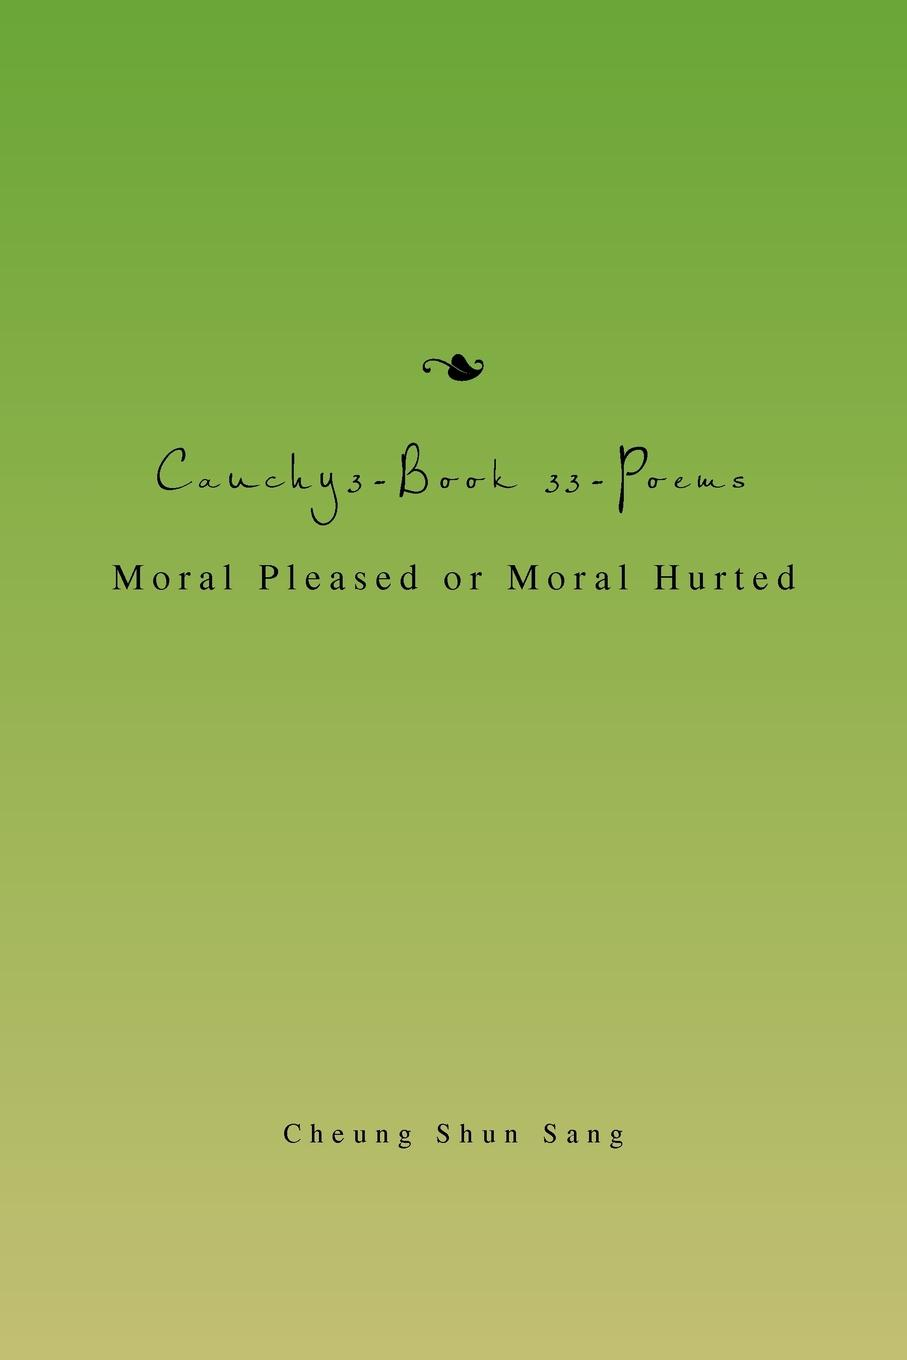 Cheung Shun Sang Cauchy3-Book 33-Poems. Moral Pleased or Moral Hurted цена и фото